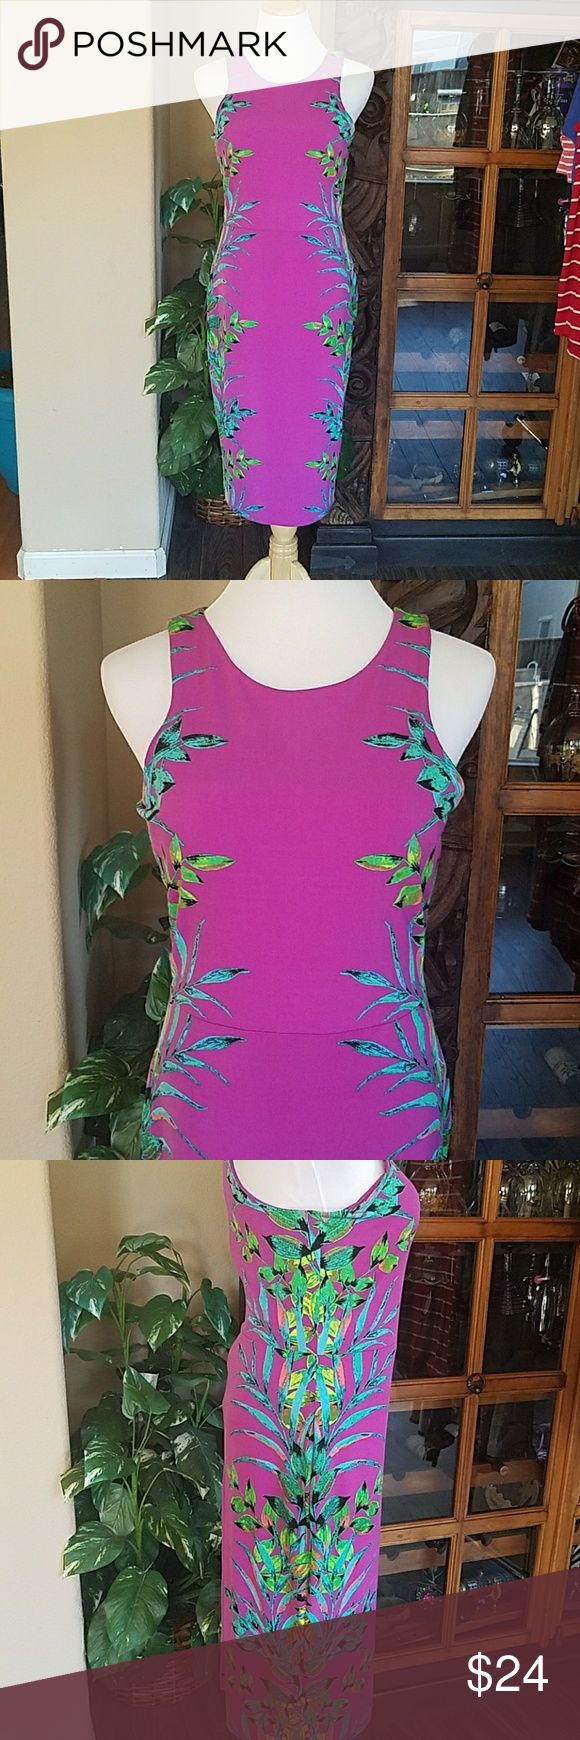 Nicole Miller dress Nicole by nicole miller purple witj gorgeous leaf print.  Perfect for wedding guest or any party.  Size Small.   Could fit to size 6 or 8 imo. INCREDIBLE deal for the price. Nicole by Nicole Miller Dresses Midi